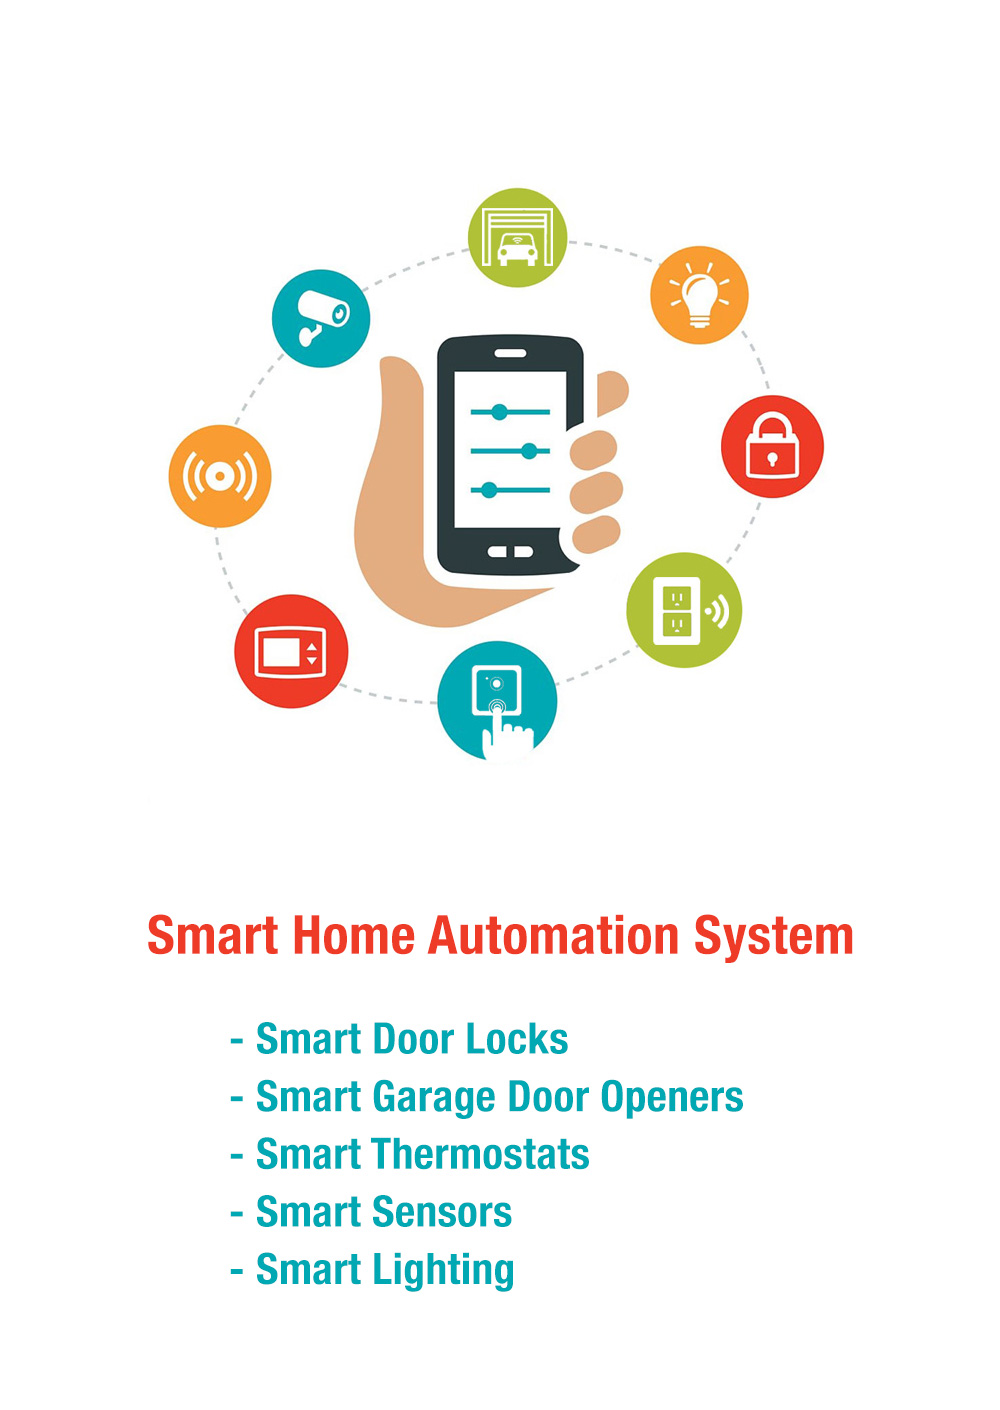 Manage the interconnected smart home devices from one platform Apple or Android.